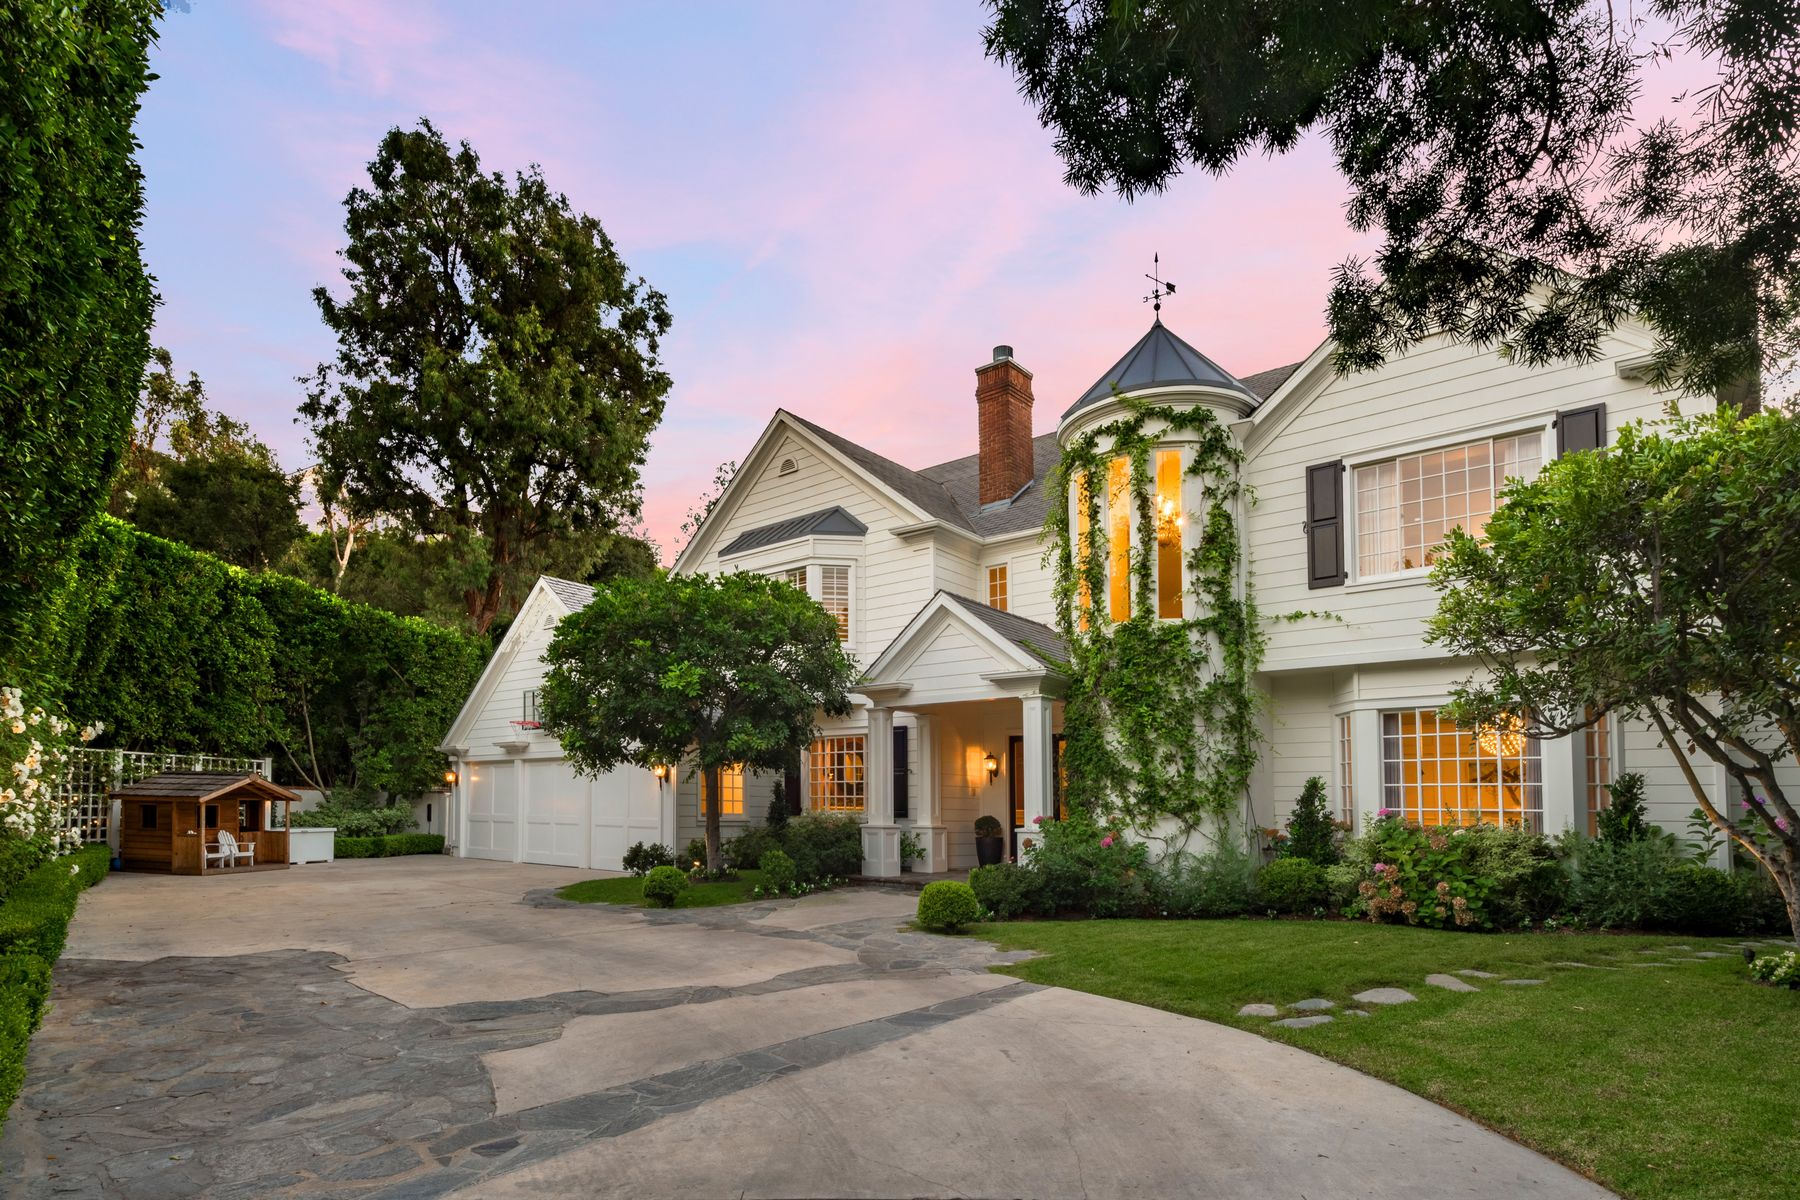 Single Family Homes for Sale at 12097 Summit Circle Beverly Hills, California 90210 United States